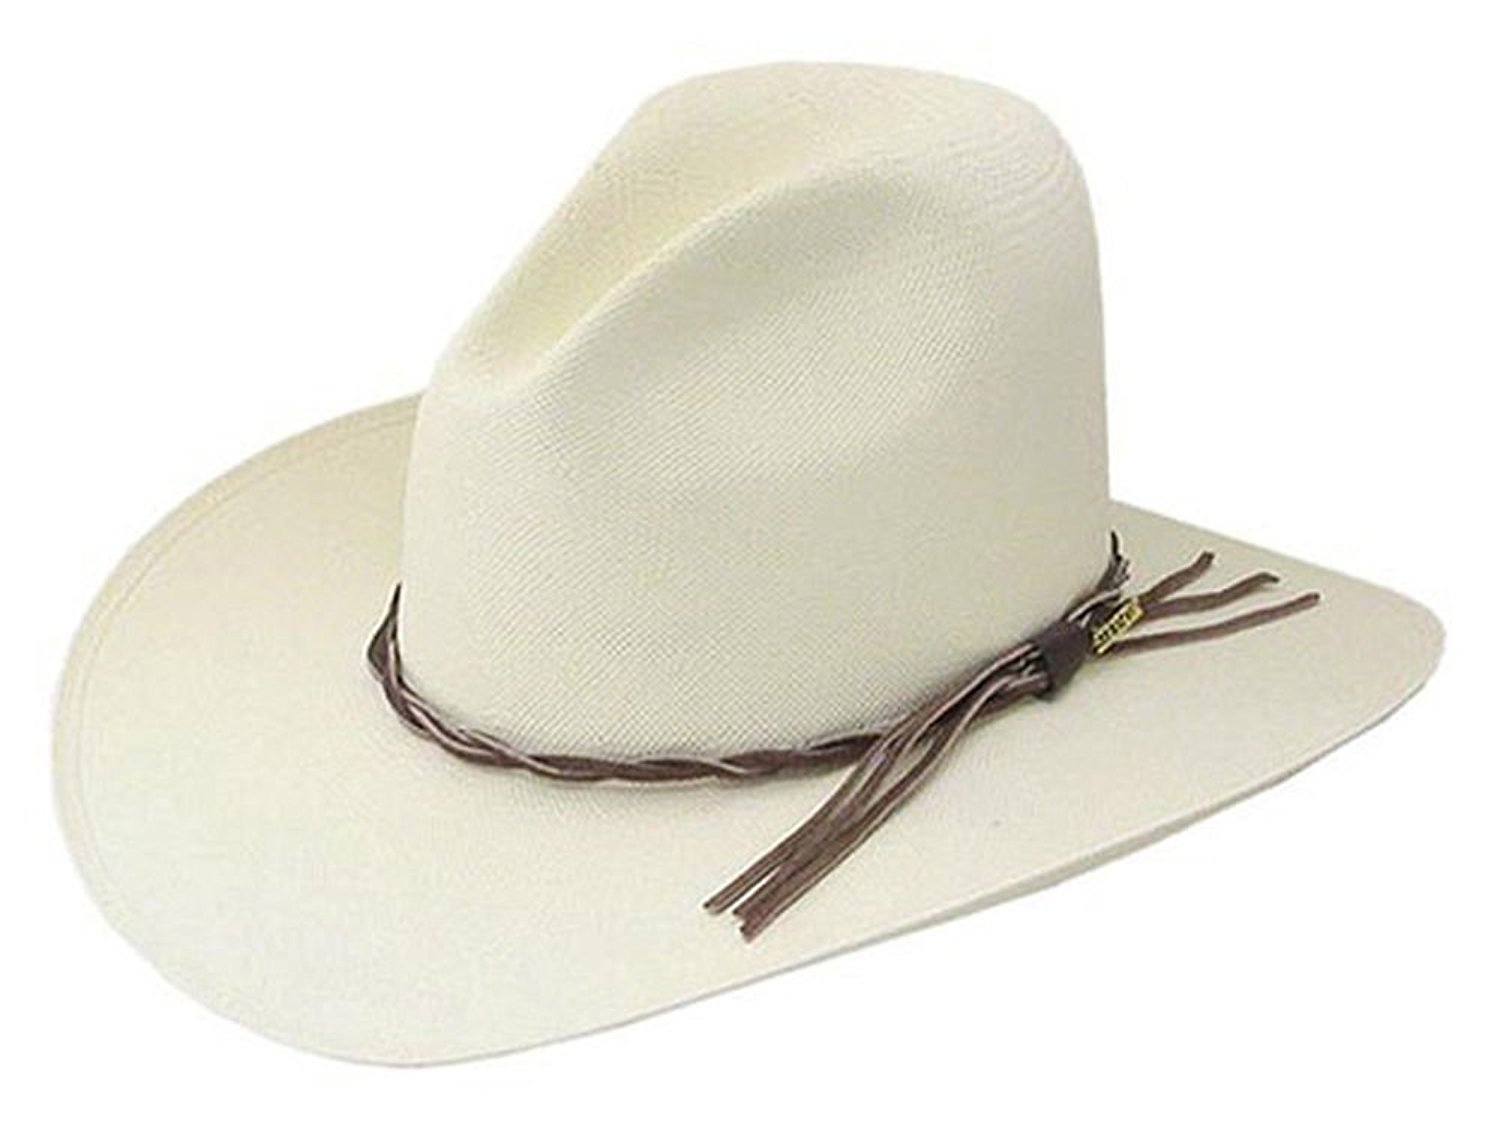 23376bc330a Get Quotations · Stetson Gus Straw Cowboy hat